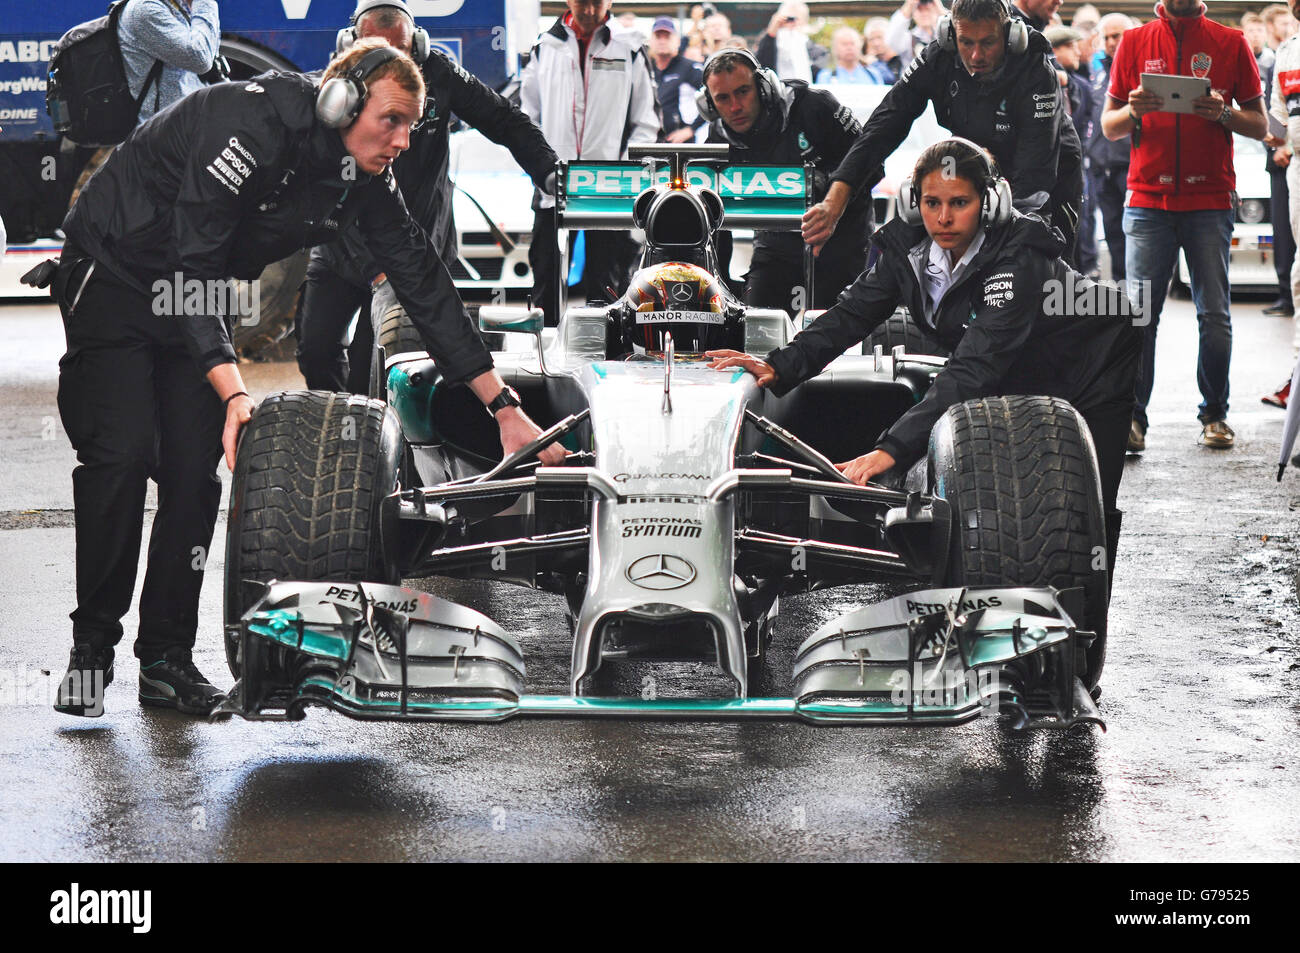 Pascal Wehrlein at the 2016 Goodwood Festival of Speed driving a Mercedes Formula 1 racing car - Stock Image